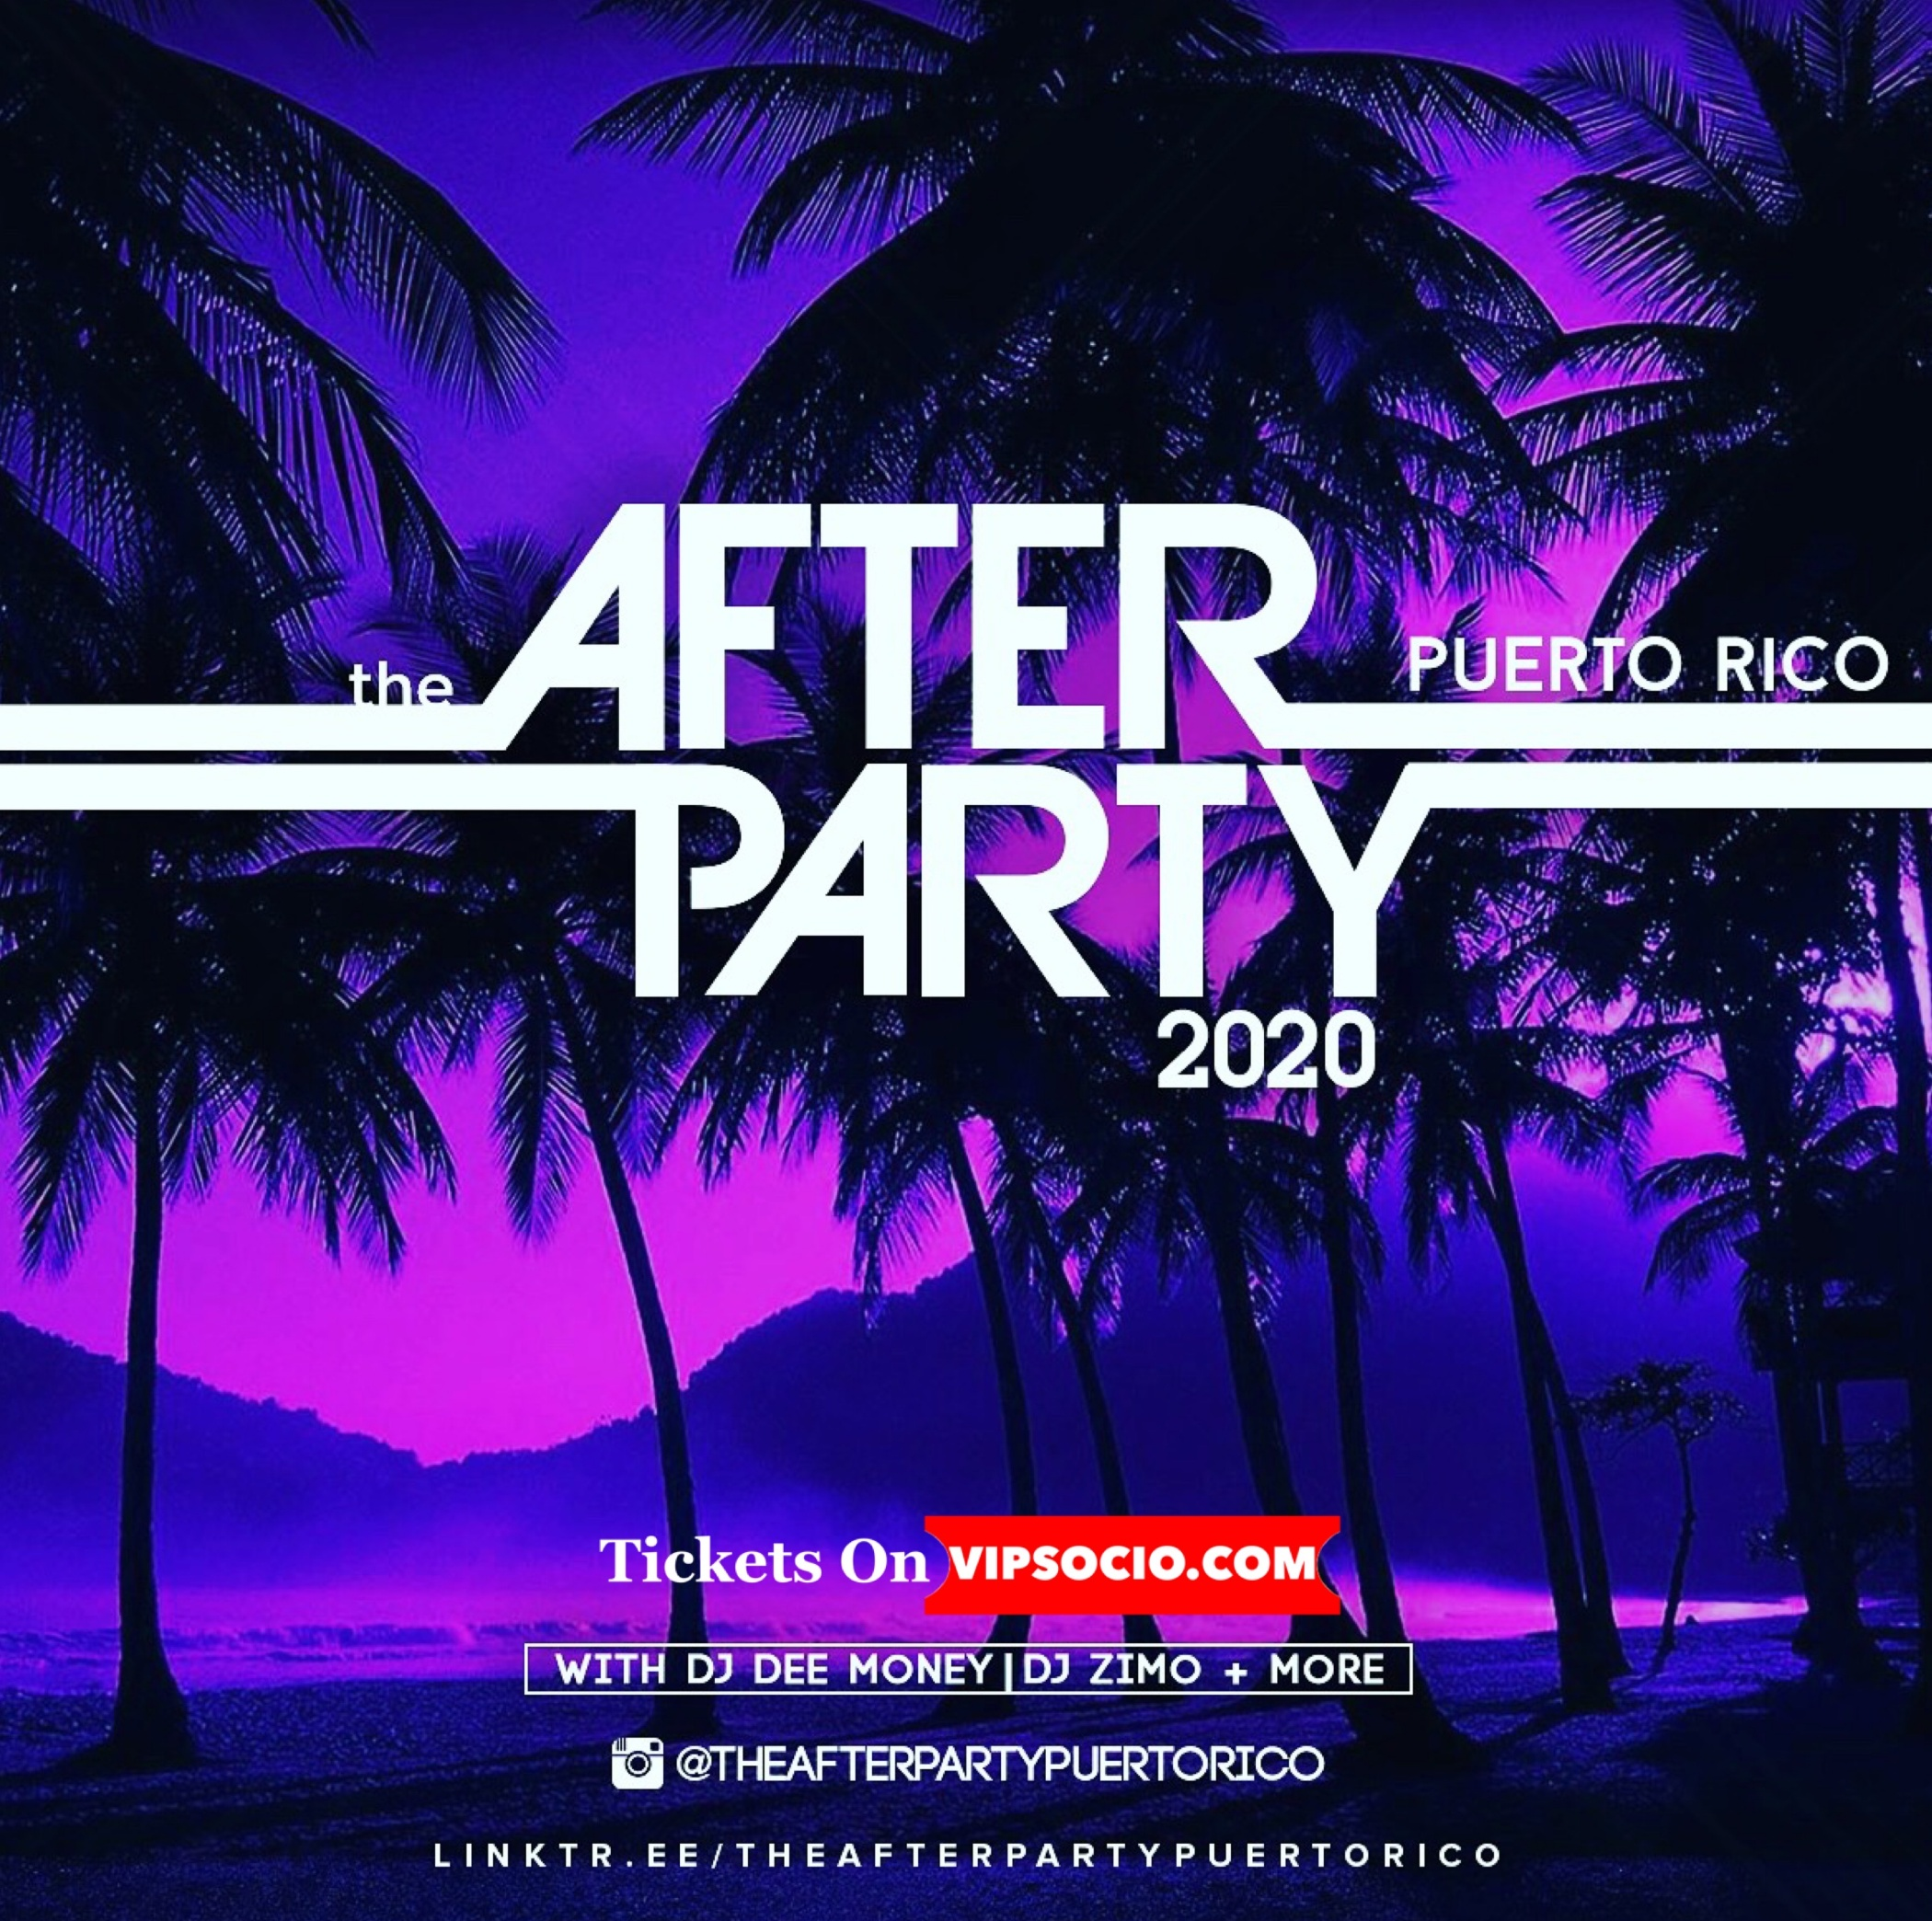 the AFTER PARTY Puerto Rico 2020